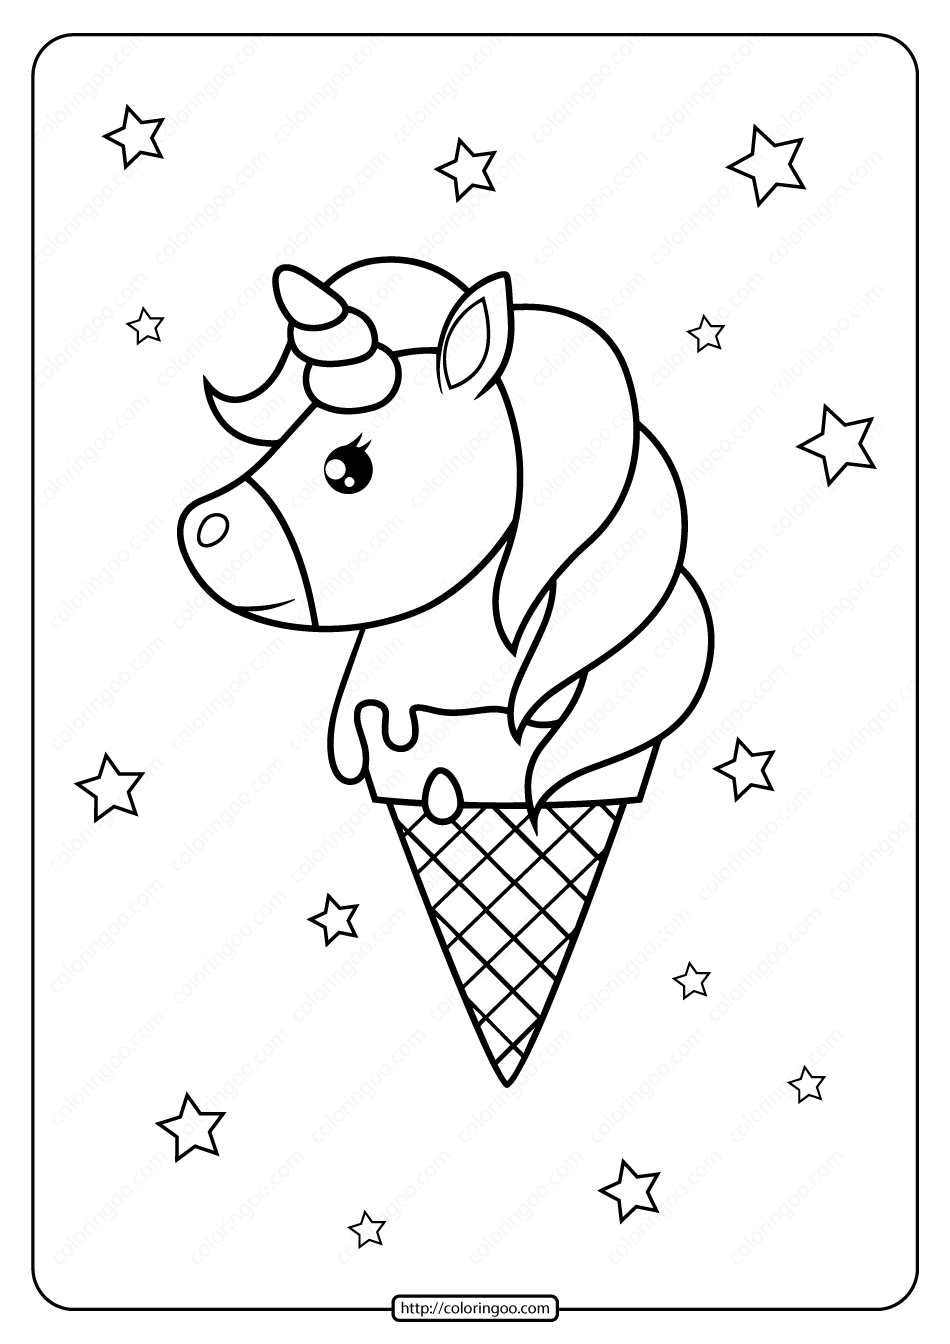 Printable Unicorn Ice Cream Cone Coloring Page Unicorn Coloring Pages Coloring Pages Coloring Pages For Kids